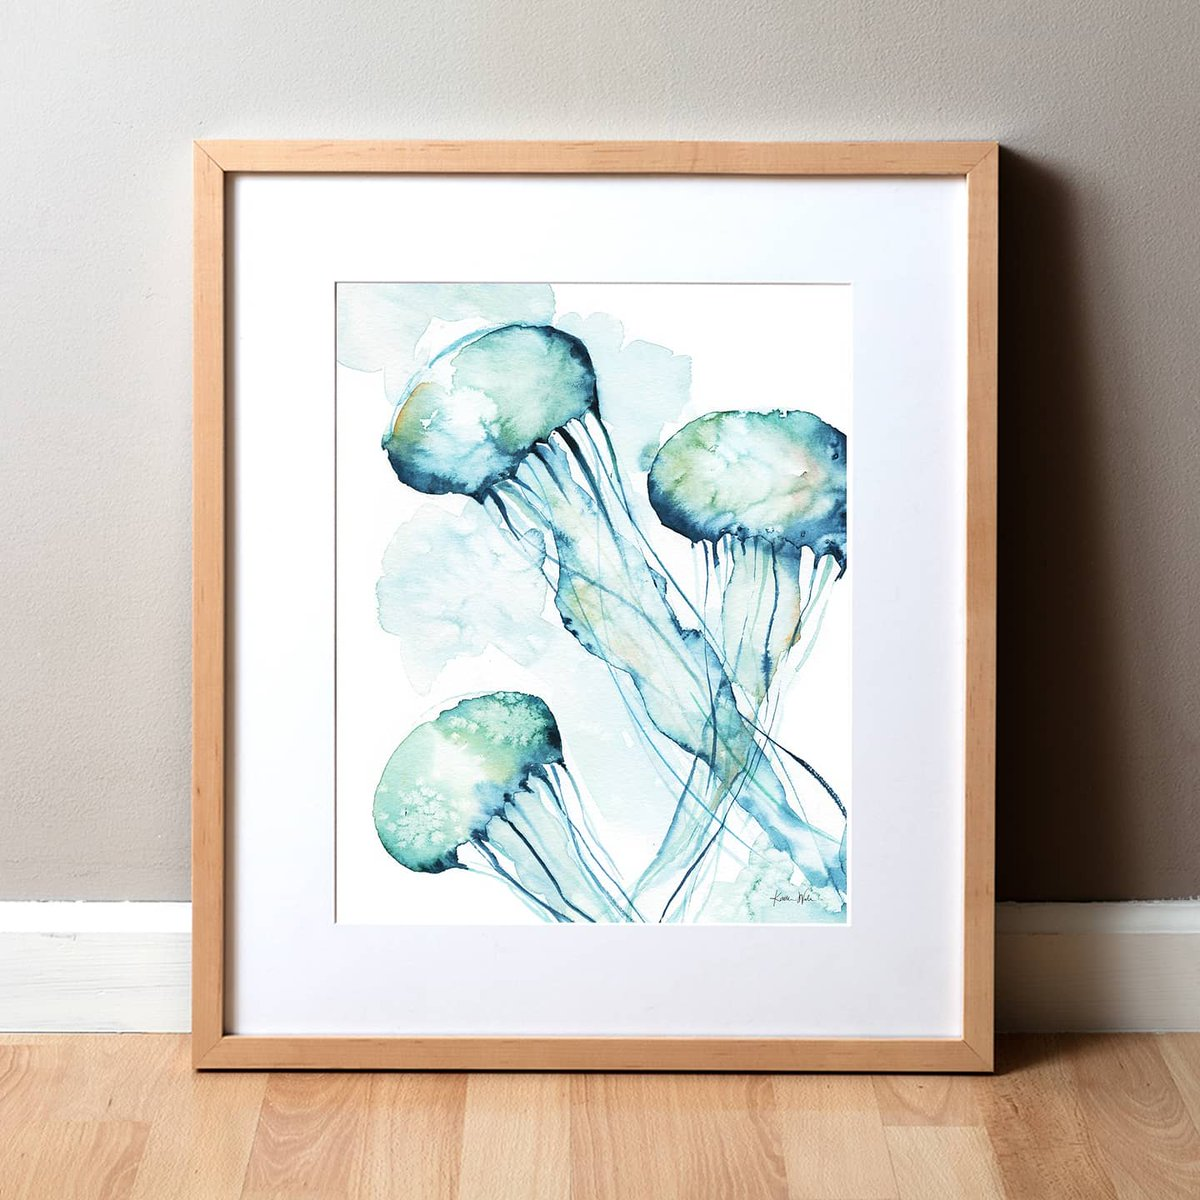 Psst! New listing up on http://lyonroadart.com !  A change of pace from somber world events. This #watercolorjellyfish just makes me feel better **sigh**. Enjoy!  #jellyfishpainting #watercoloranimals #watercolorpaintingspic.twitter.com/NqzKM2DnkT